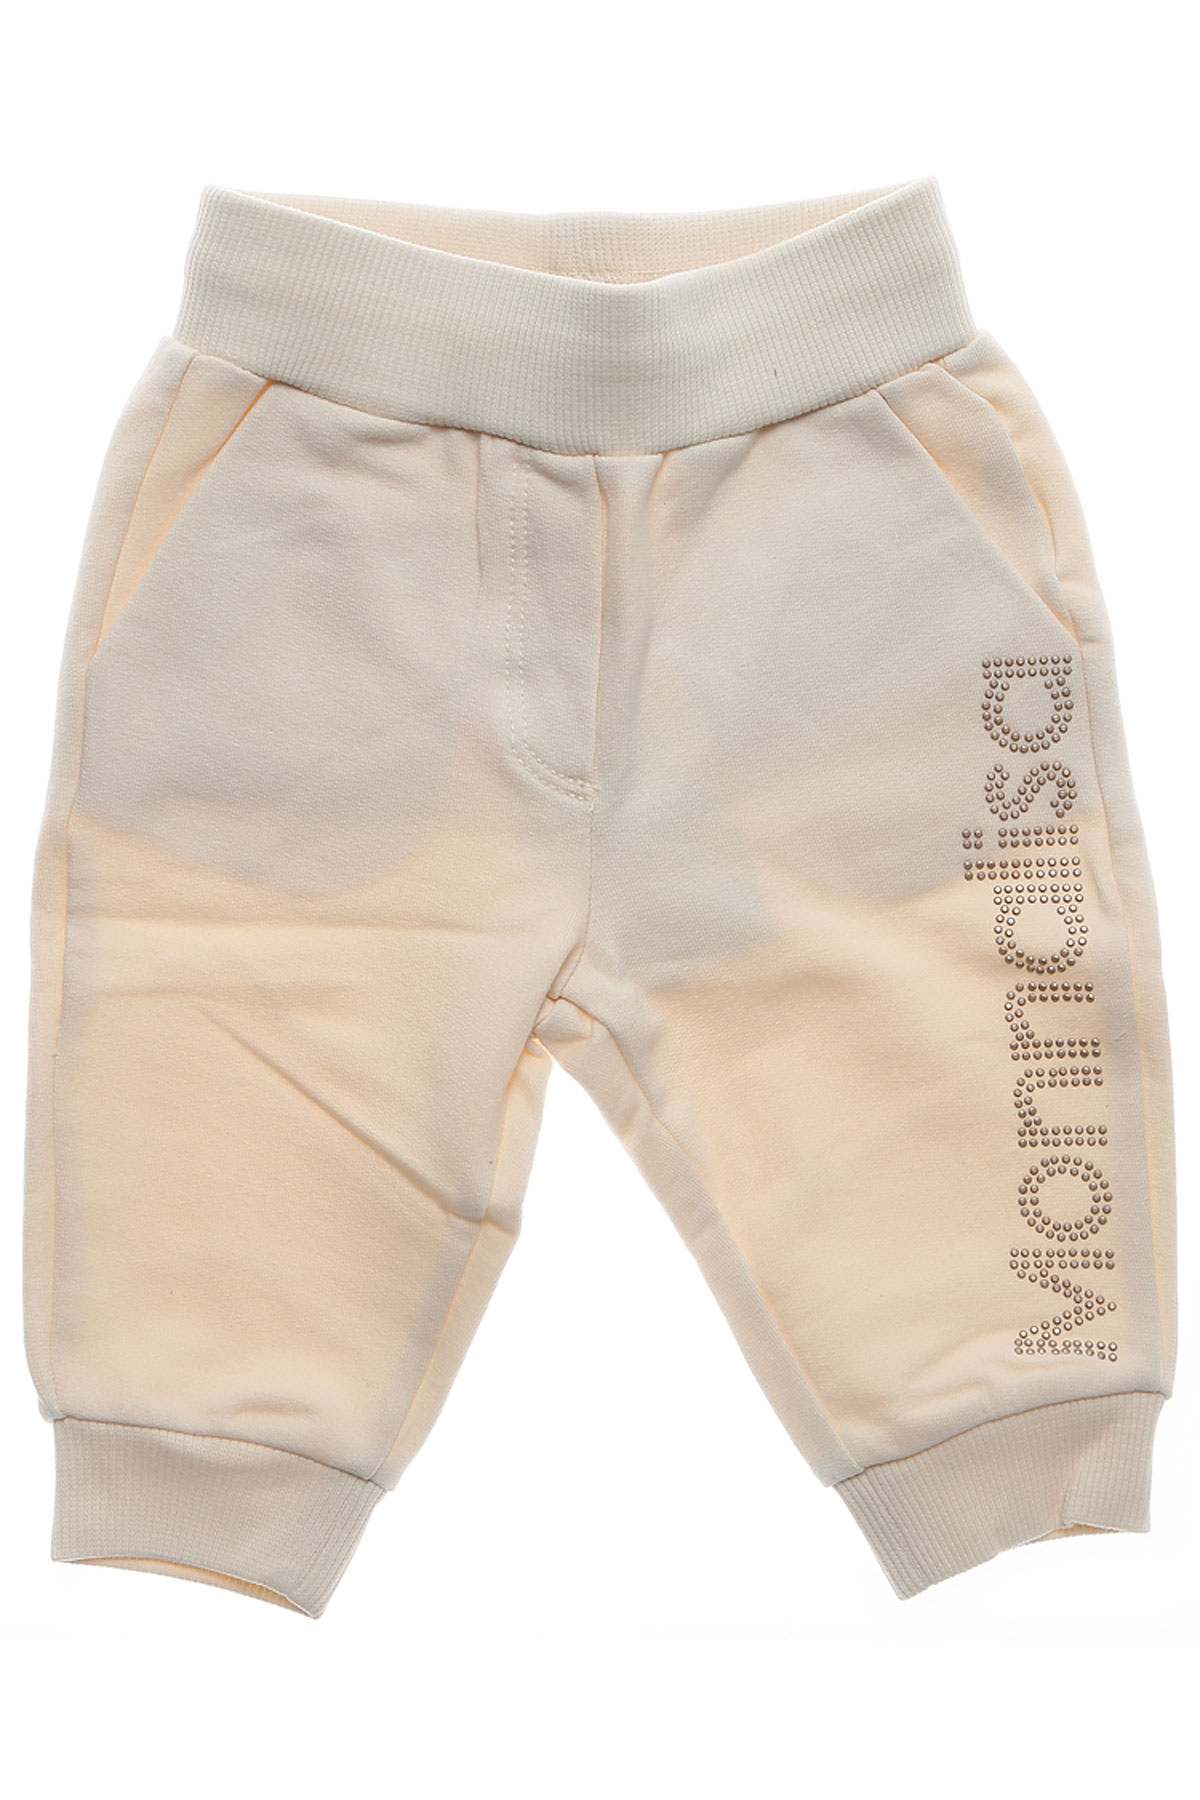 Image of Monnalisa Baby Sweatpants for Girls On Sale in Outlet, Beige, Cotton, 2017, 3M 3Y